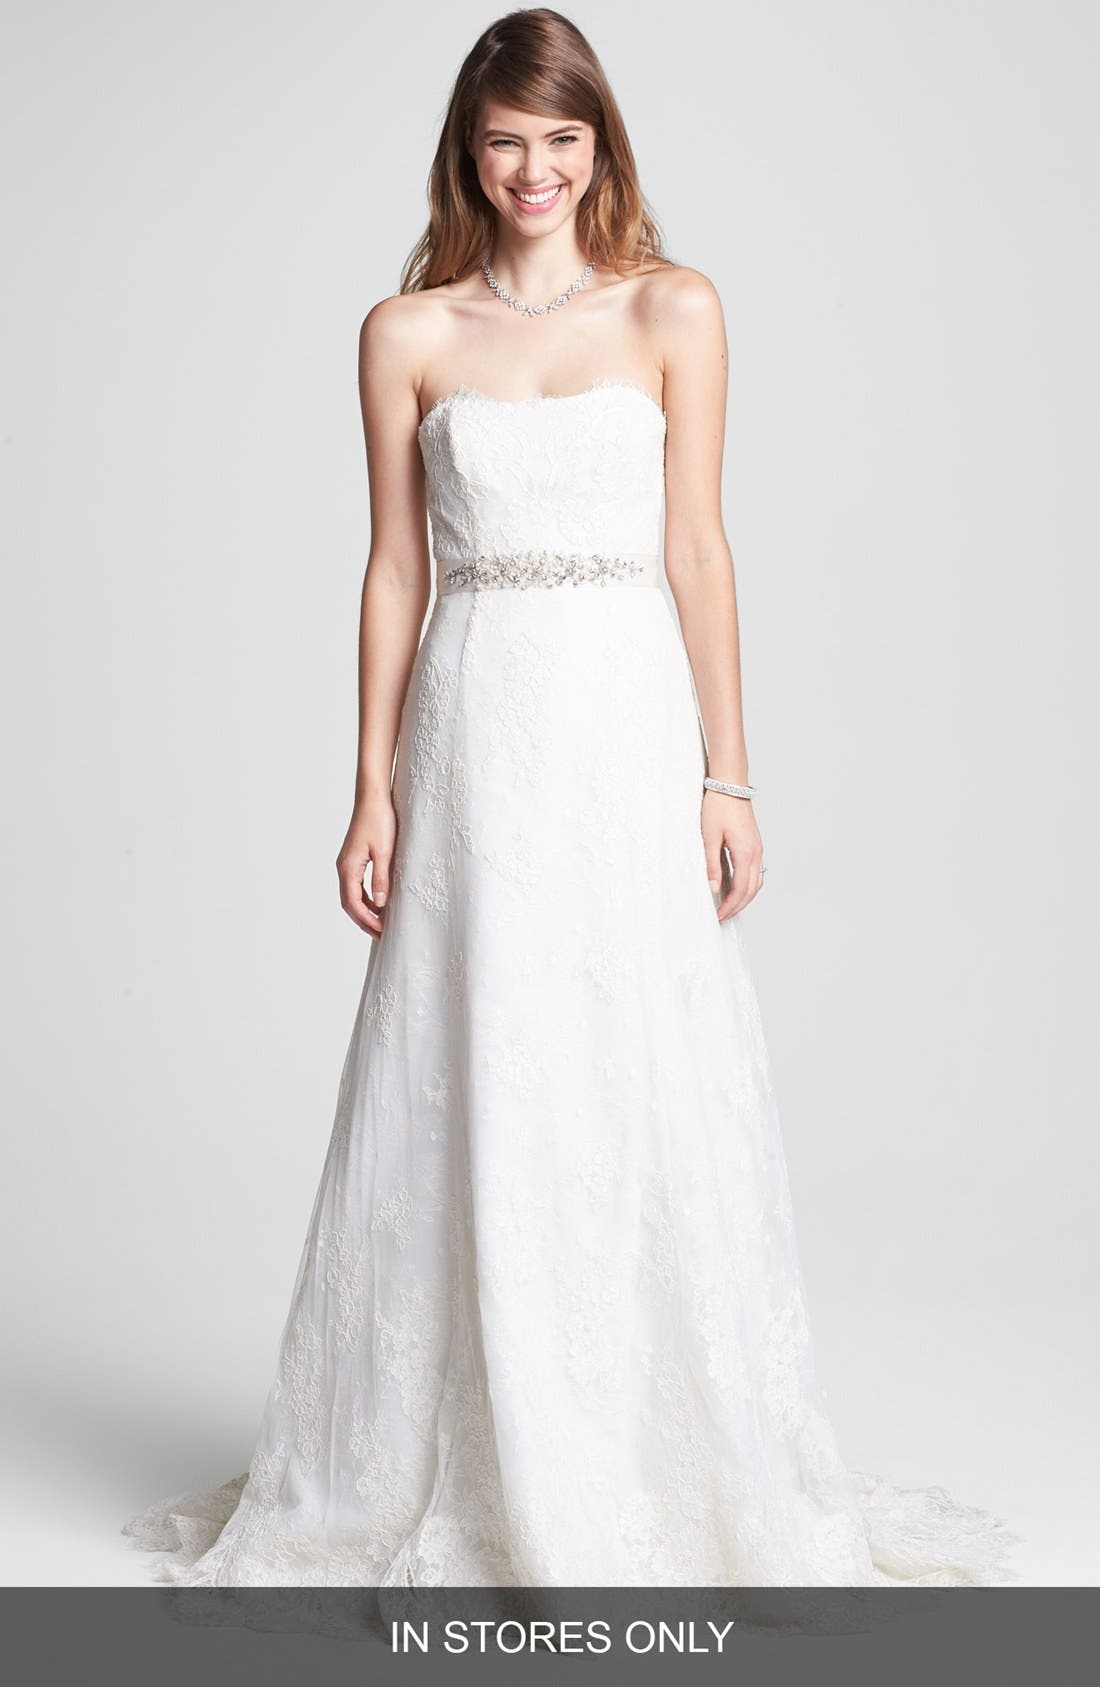 BLISS MONIQUE LHUILLIER Strapless Chantilly Lace Wedding Dress